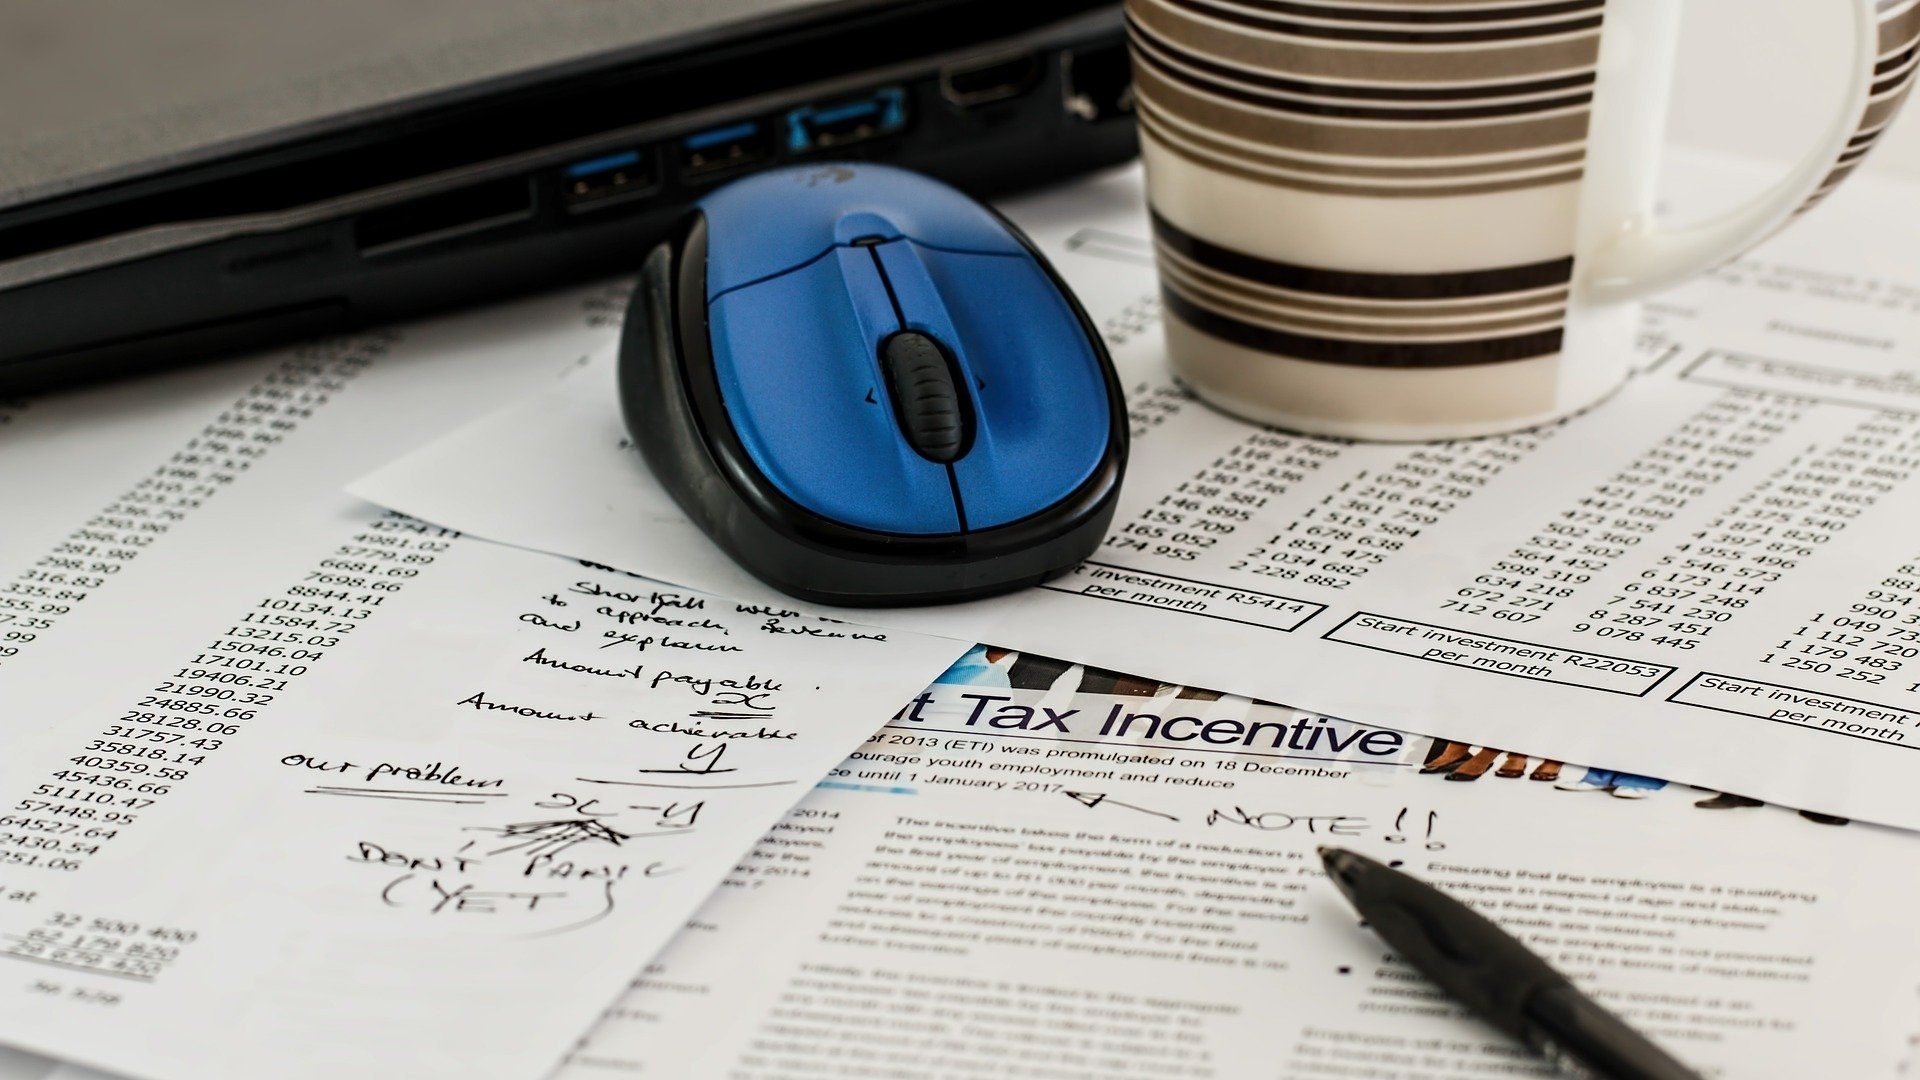 a blue computer mouse on top of papers with bottom of coffee mug visible